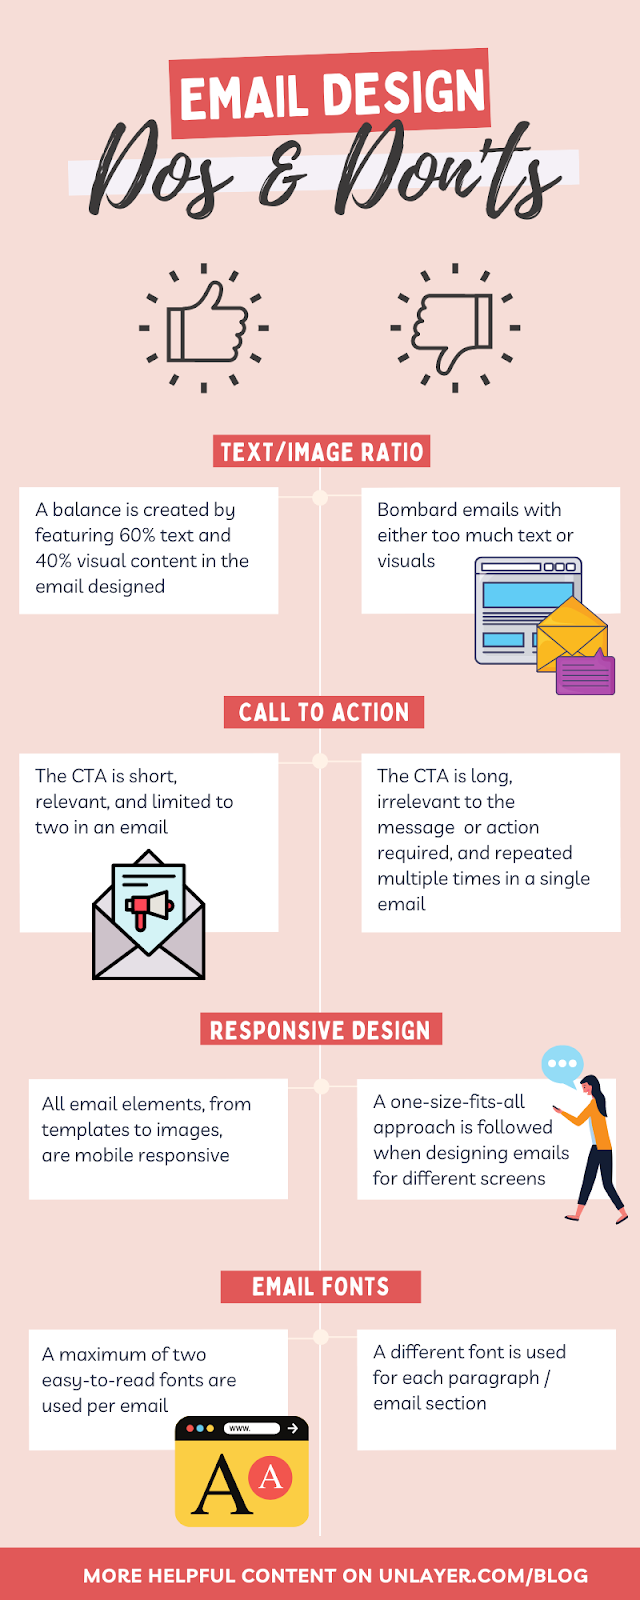 Email design do's and dont's [infographic]